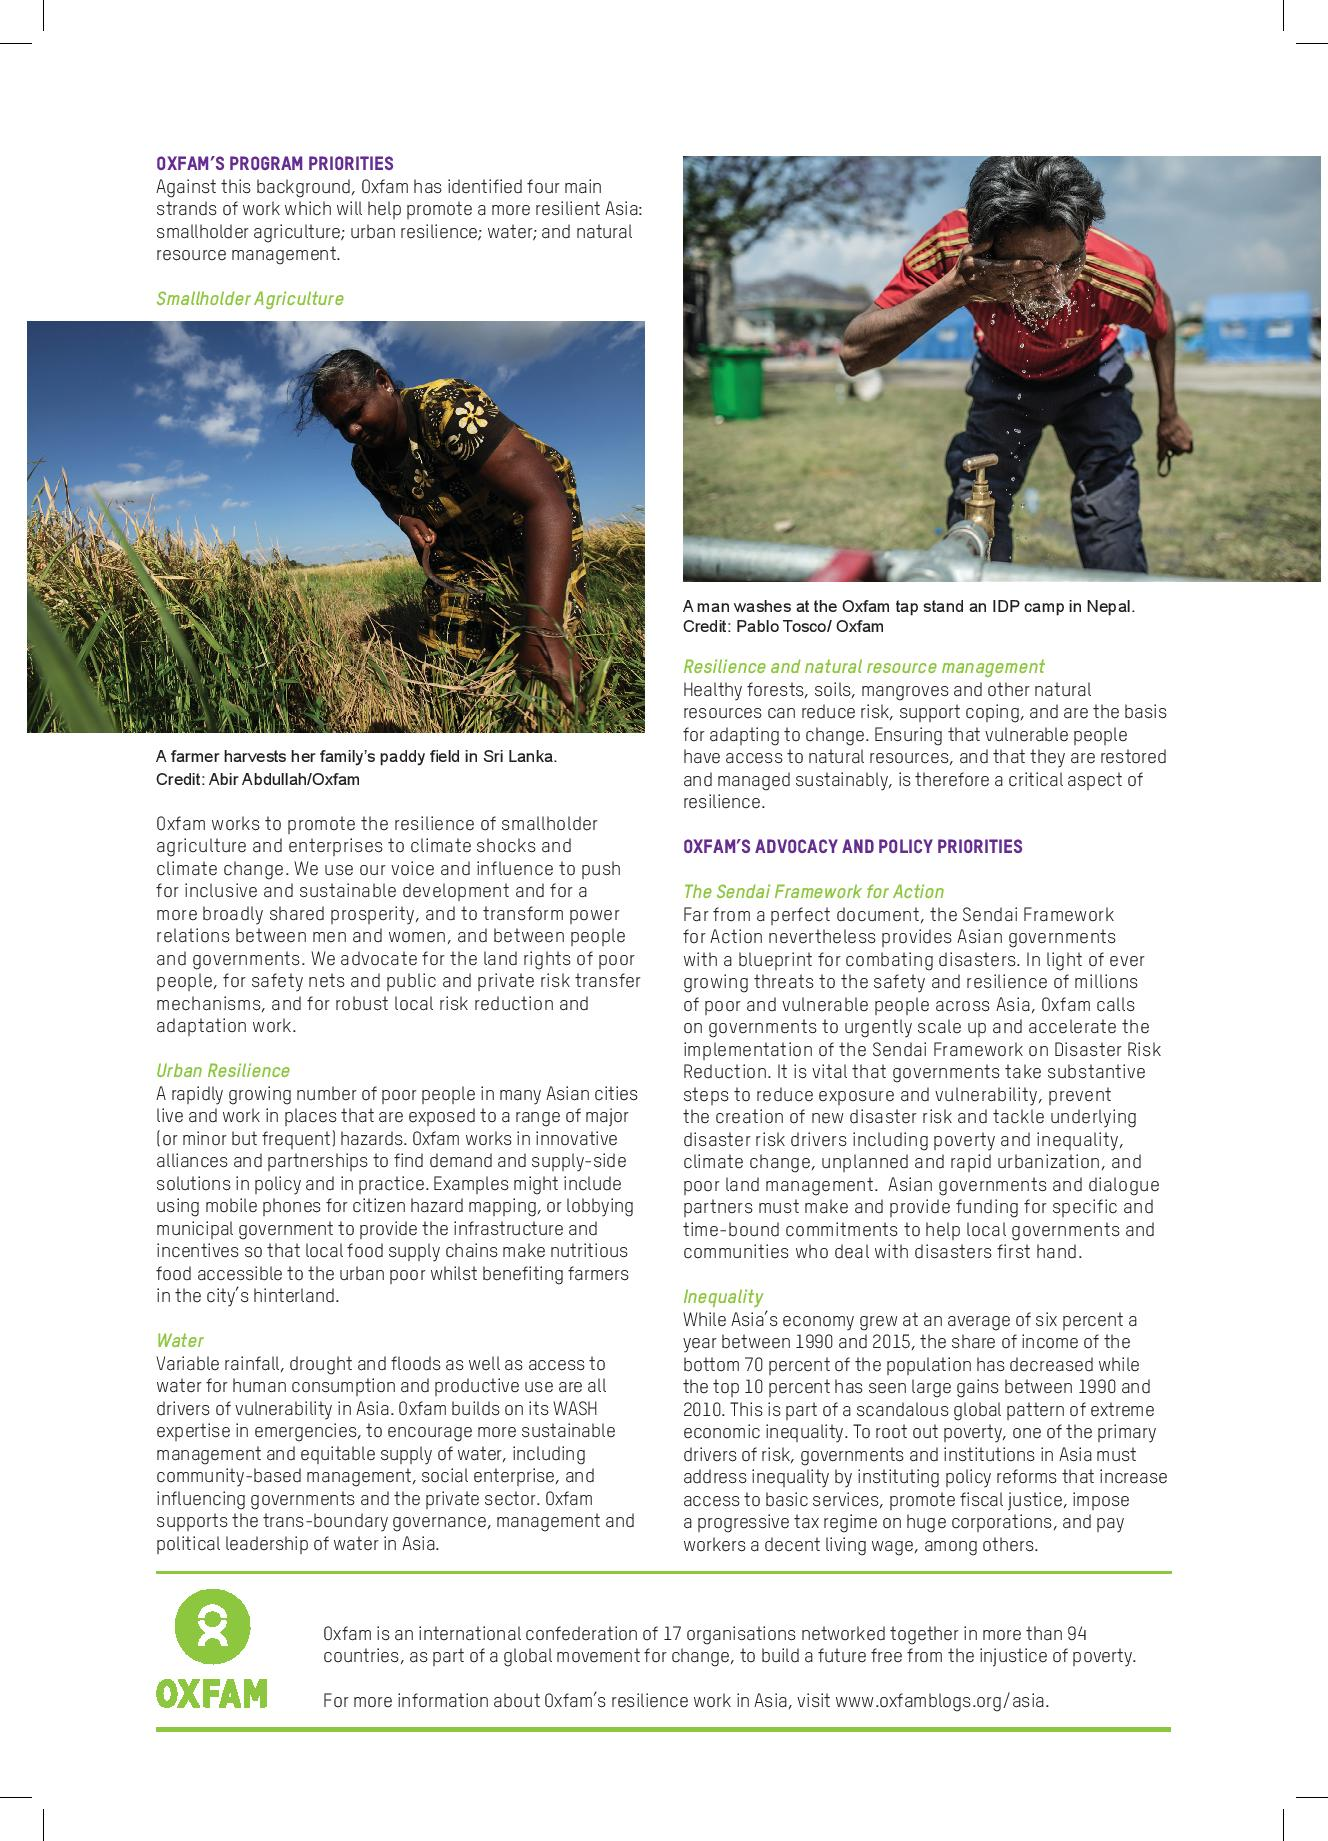 Oxfam briefer - Disaster risk reduction, resilience - page 2